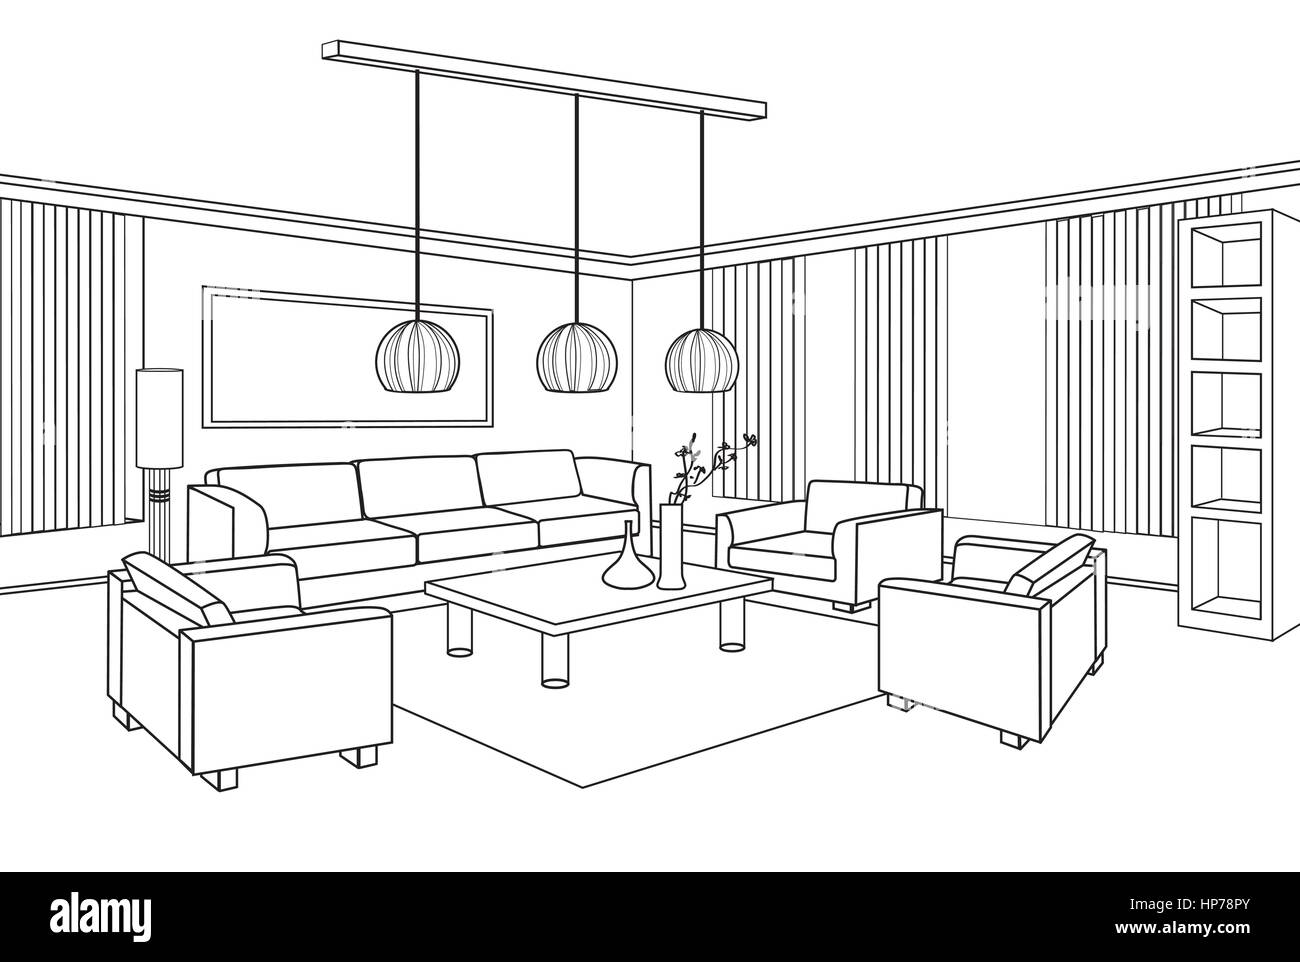 Living Room View Interior Outline Sketch Furniture Blueprint Stock